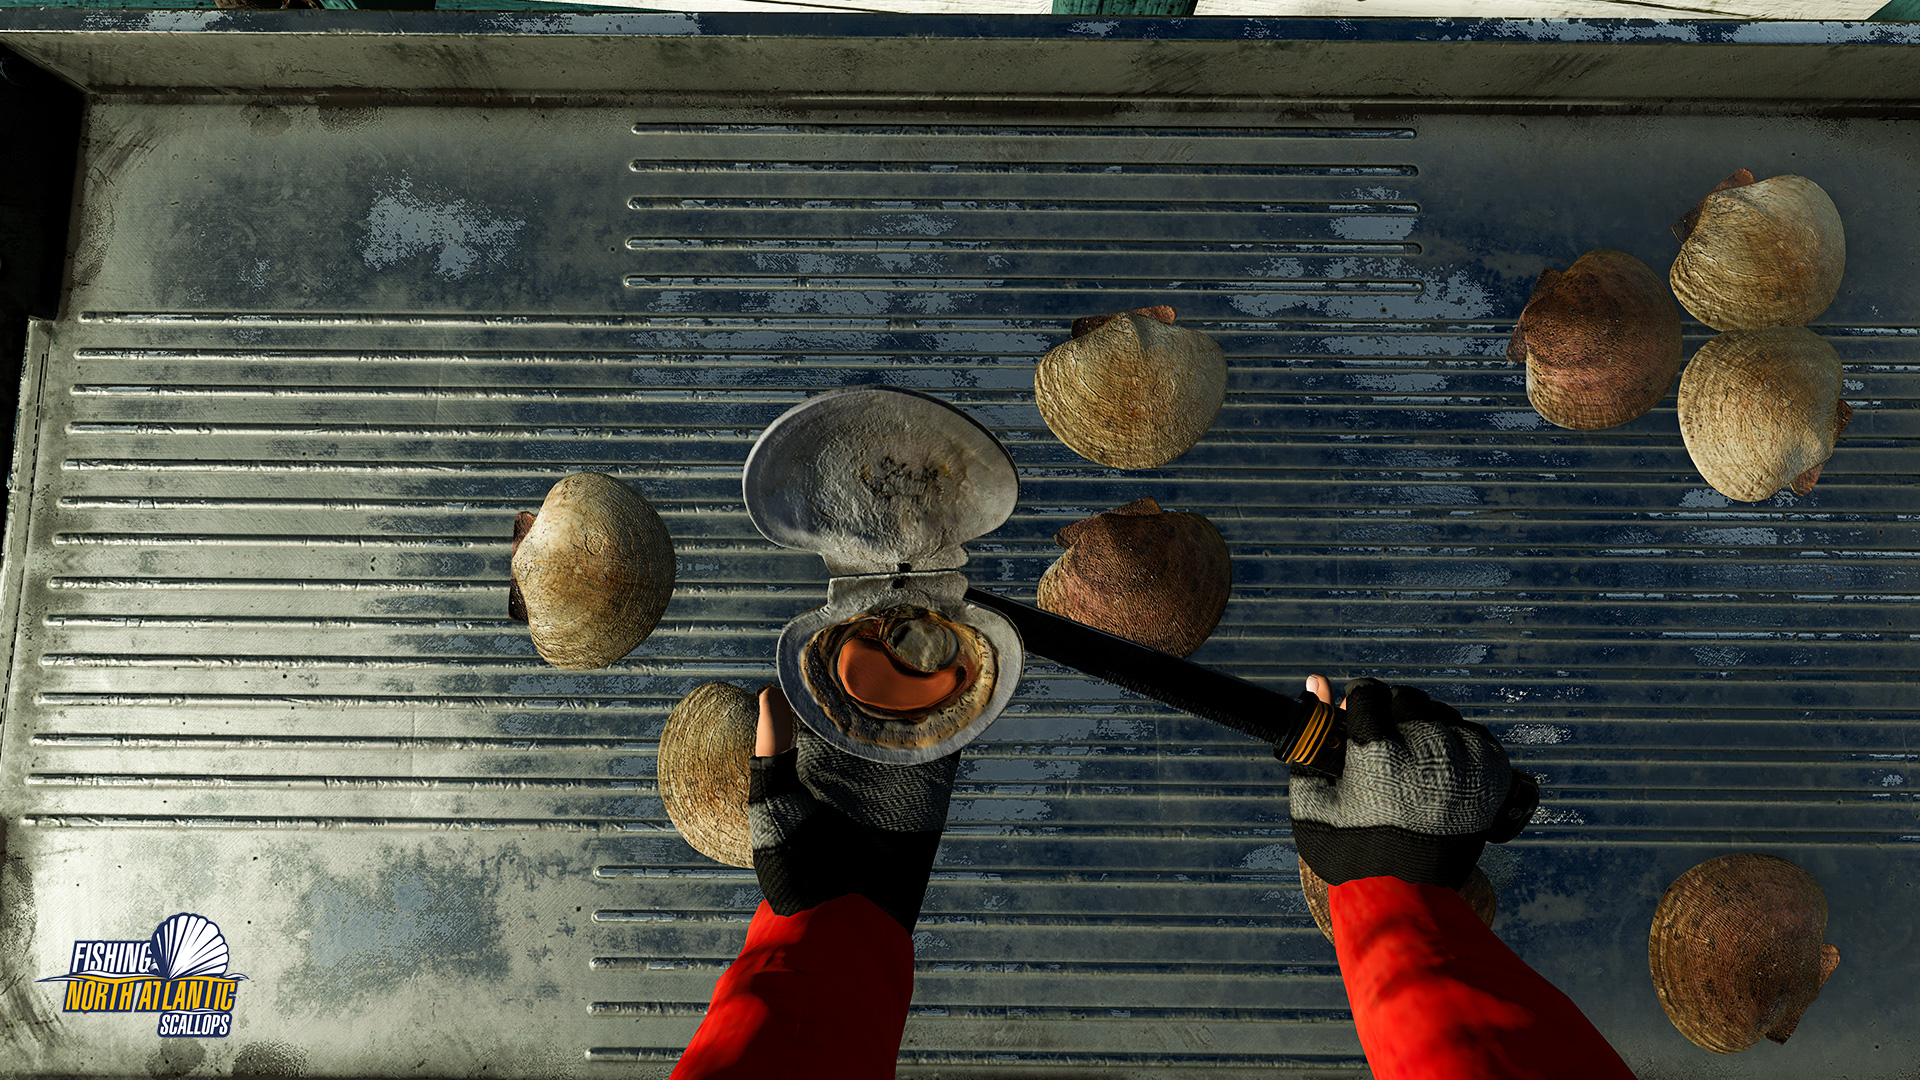 A screenshot from the game Fishing: North Atlantic's Scallops expansion. There are boats and scallops.